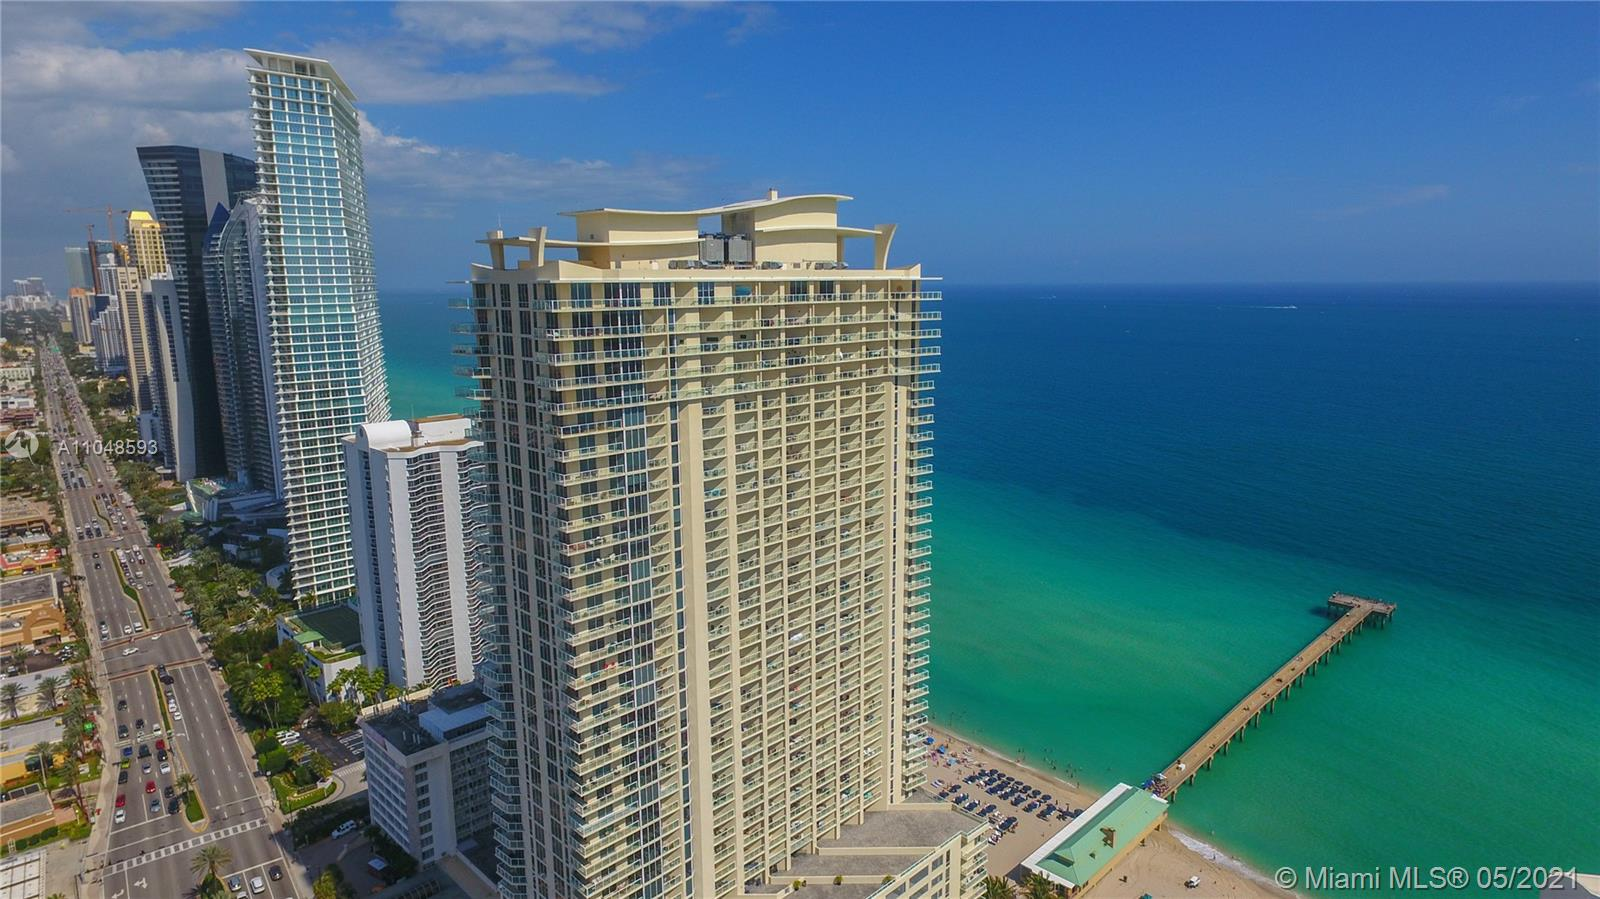 Gorgeous 2 Bedroom/2 Bathroom Condo in the Heart of Sunny Isles. Located Directly on the Ocean, This Unit Features Tile and Wood Floors Thru Out, Open Kitchen With Granite Countertops and Wood Cabinets. Breath-Taking Southeast Ocean Views with 2 Balconies, Washer & Dryer. Master Bath Features His and Her Sinks with Tub and Shower. Located Right on the Sunny Isles Beach Fishing Pier. Building Amenities Include Valet Parking, Oceanfront Pool and Gym, Beach Service. Rentals Allowed Right Away 12 Times a Year. Location Offers Easy Access to World Class Shopping, All Major Roadways, Dining, A+ Schools, Golf Courses, Airports and Ports, and Much More. Pet Friendly Building! ***Multiple Offers Present. Highest and Best Due By 06/04/21 12PM***